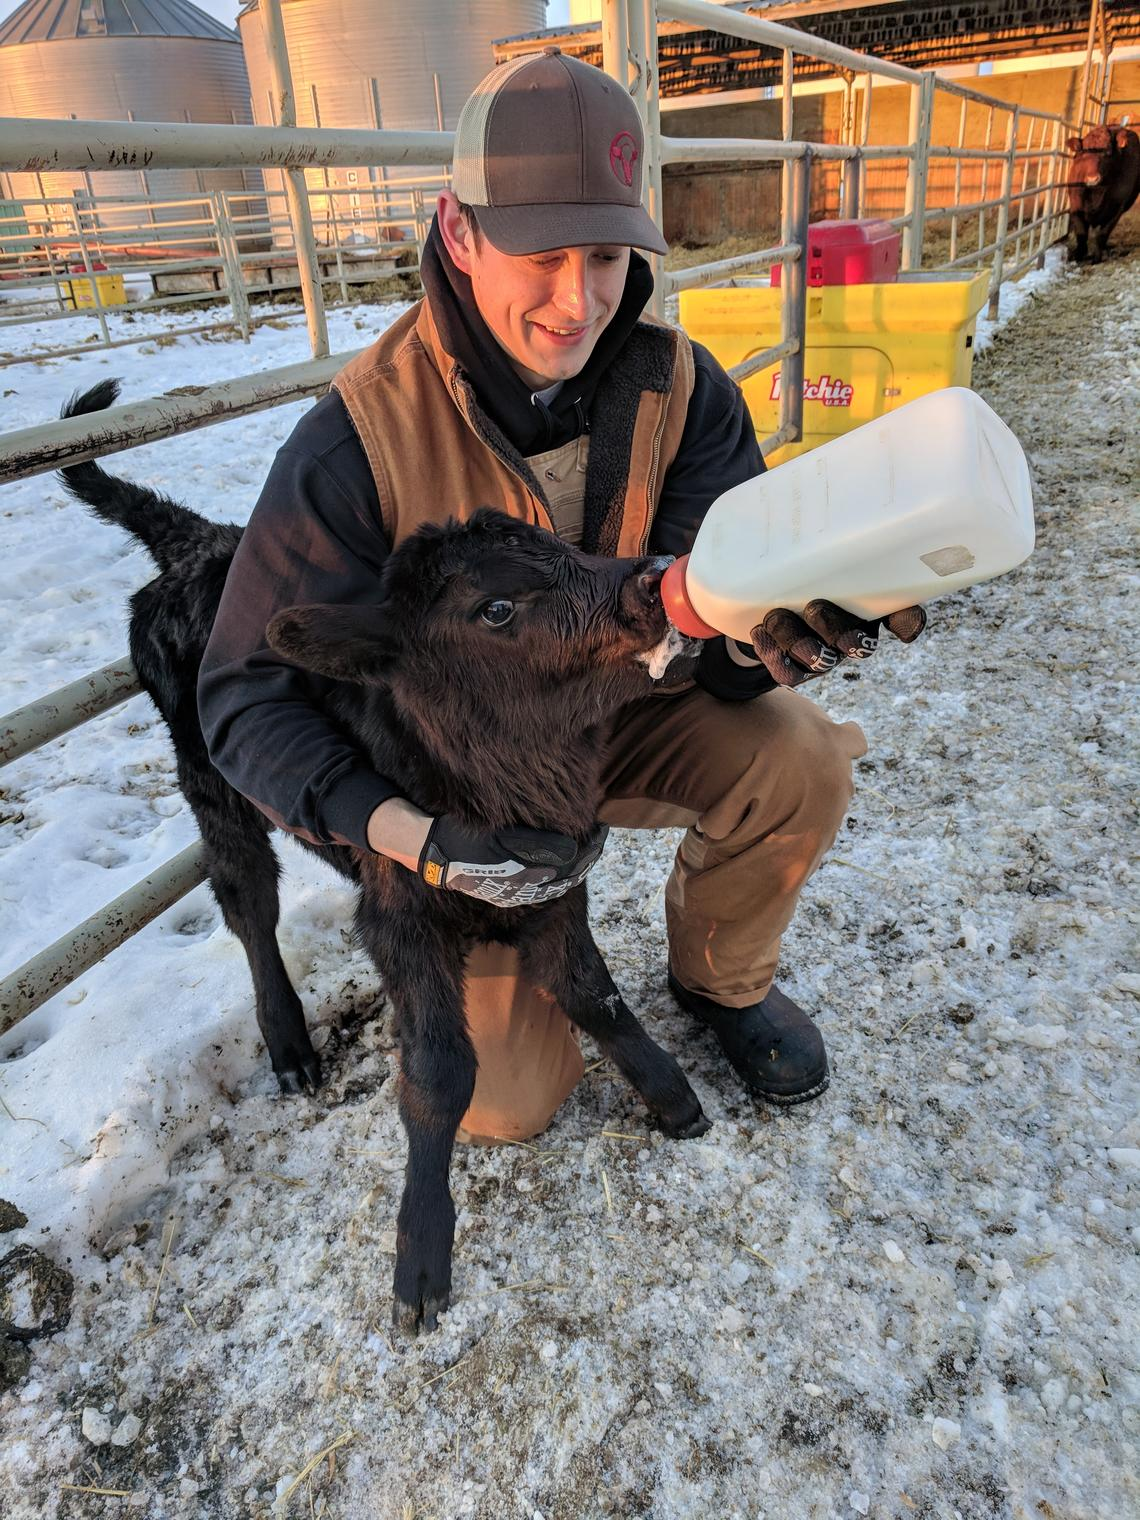 Erik Burow, University of Calgary Veterinary Medicine Class of 2019, credits great mentors for fuelling his interest in cattle health.